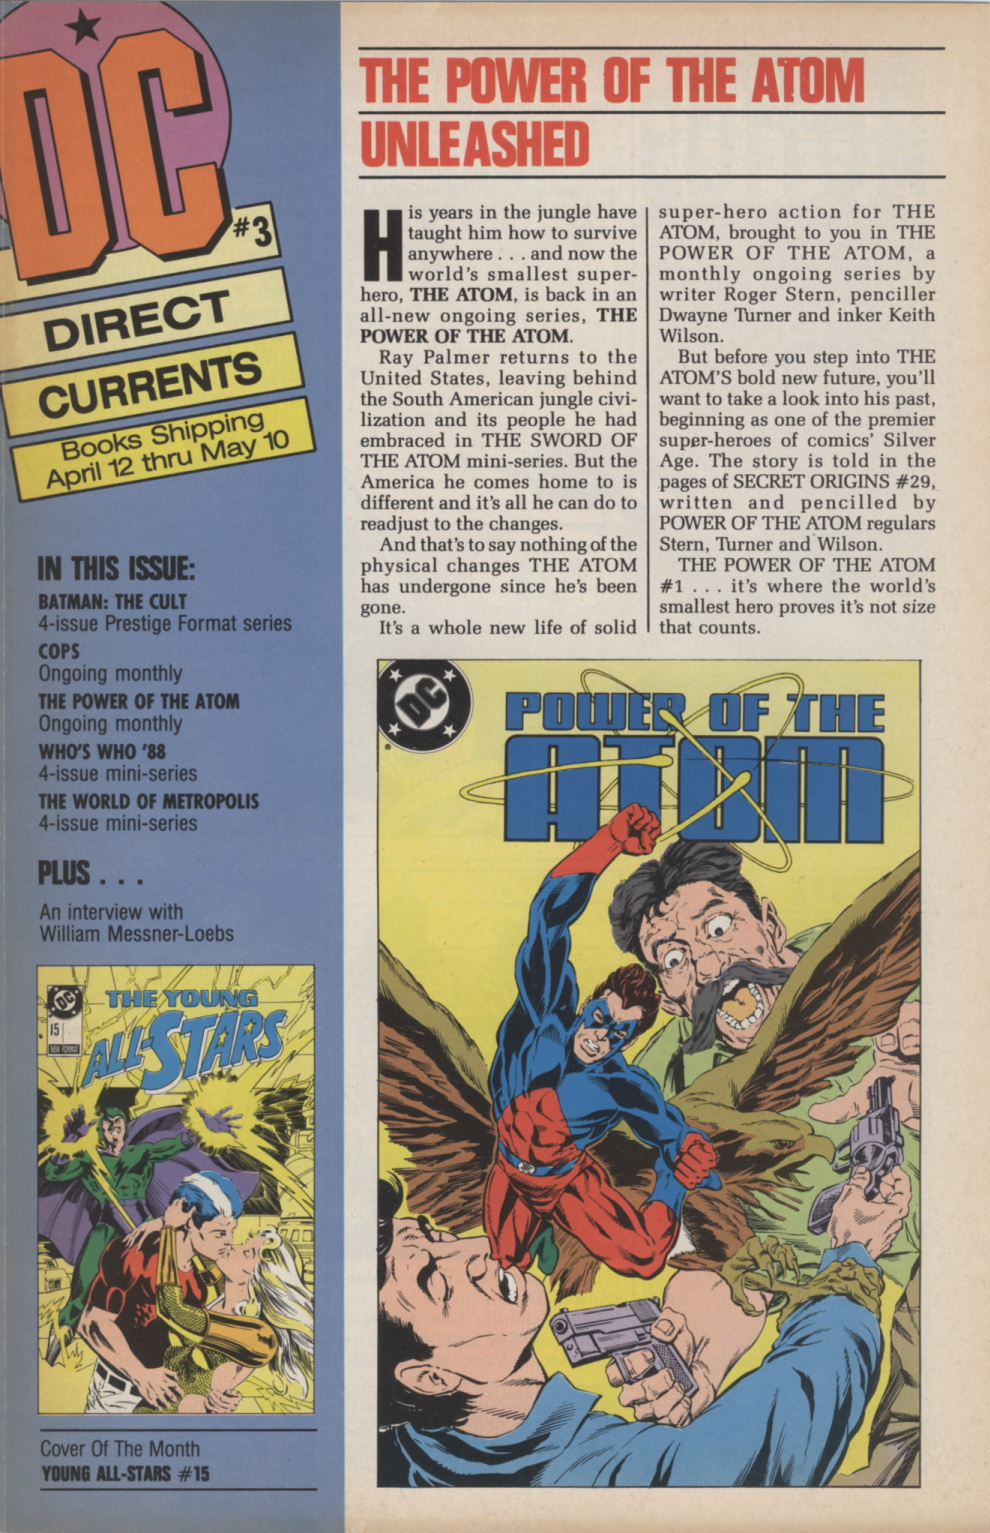 Time Capsule: DC Direct Currents 3, March 1988